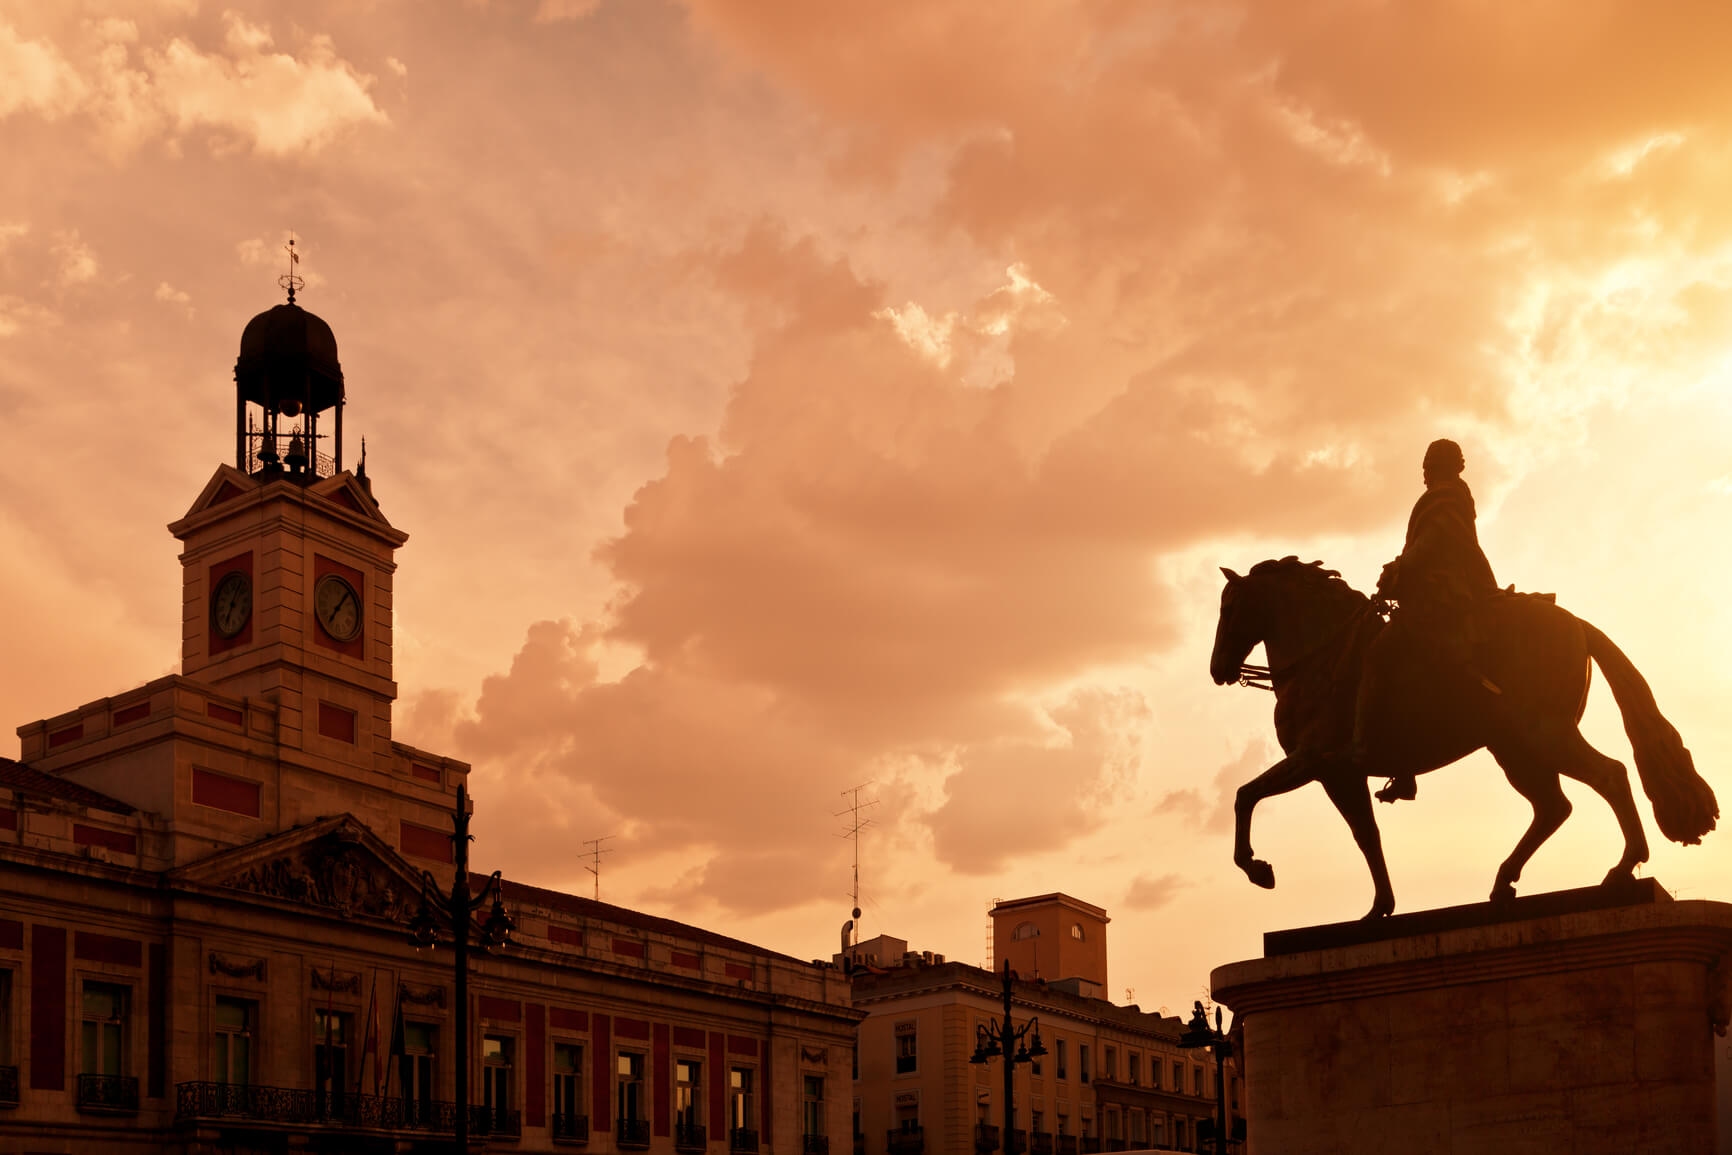 HOT!! Non-stop from New York to Madrid, Spain for only $258 roundtrip